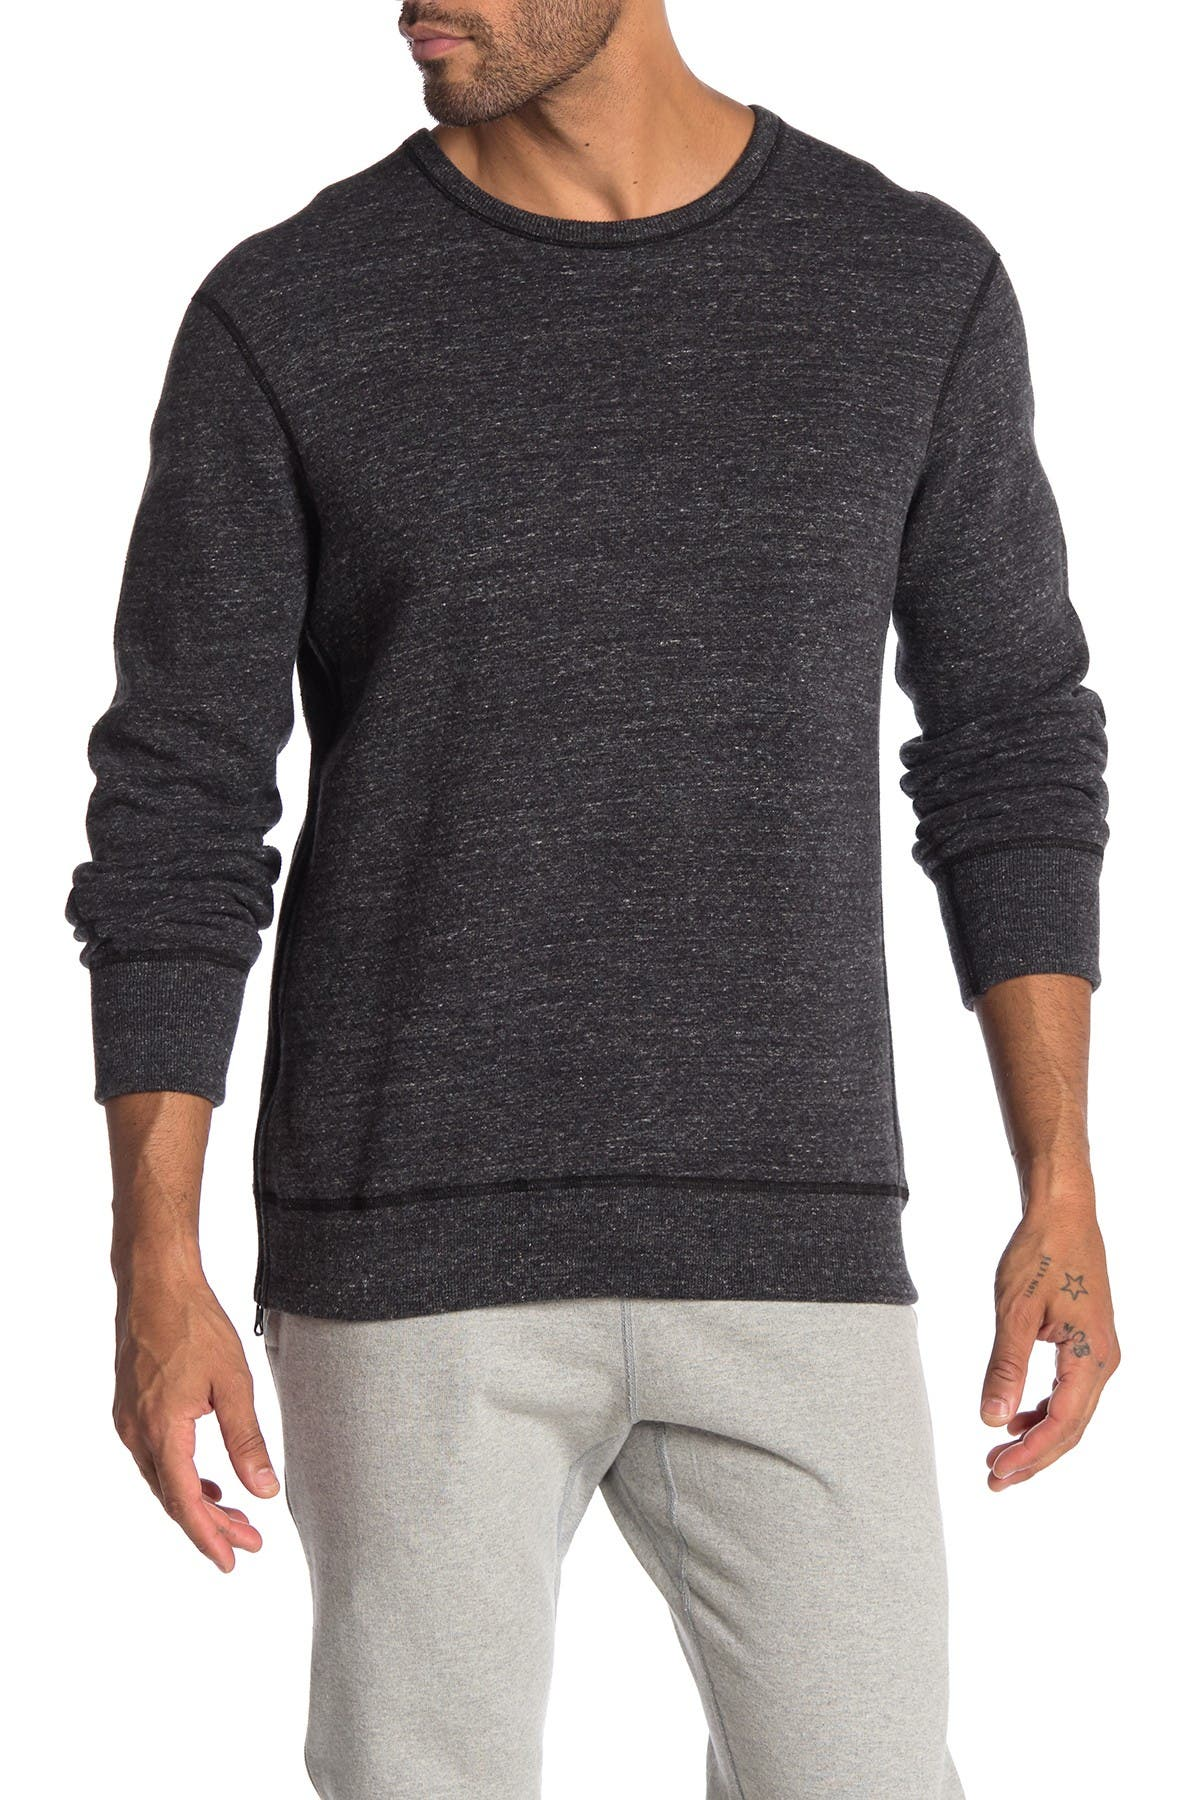 Image of REIGNING CHAMP Mesh Double Knit Side Zip Crew Neck Sweater